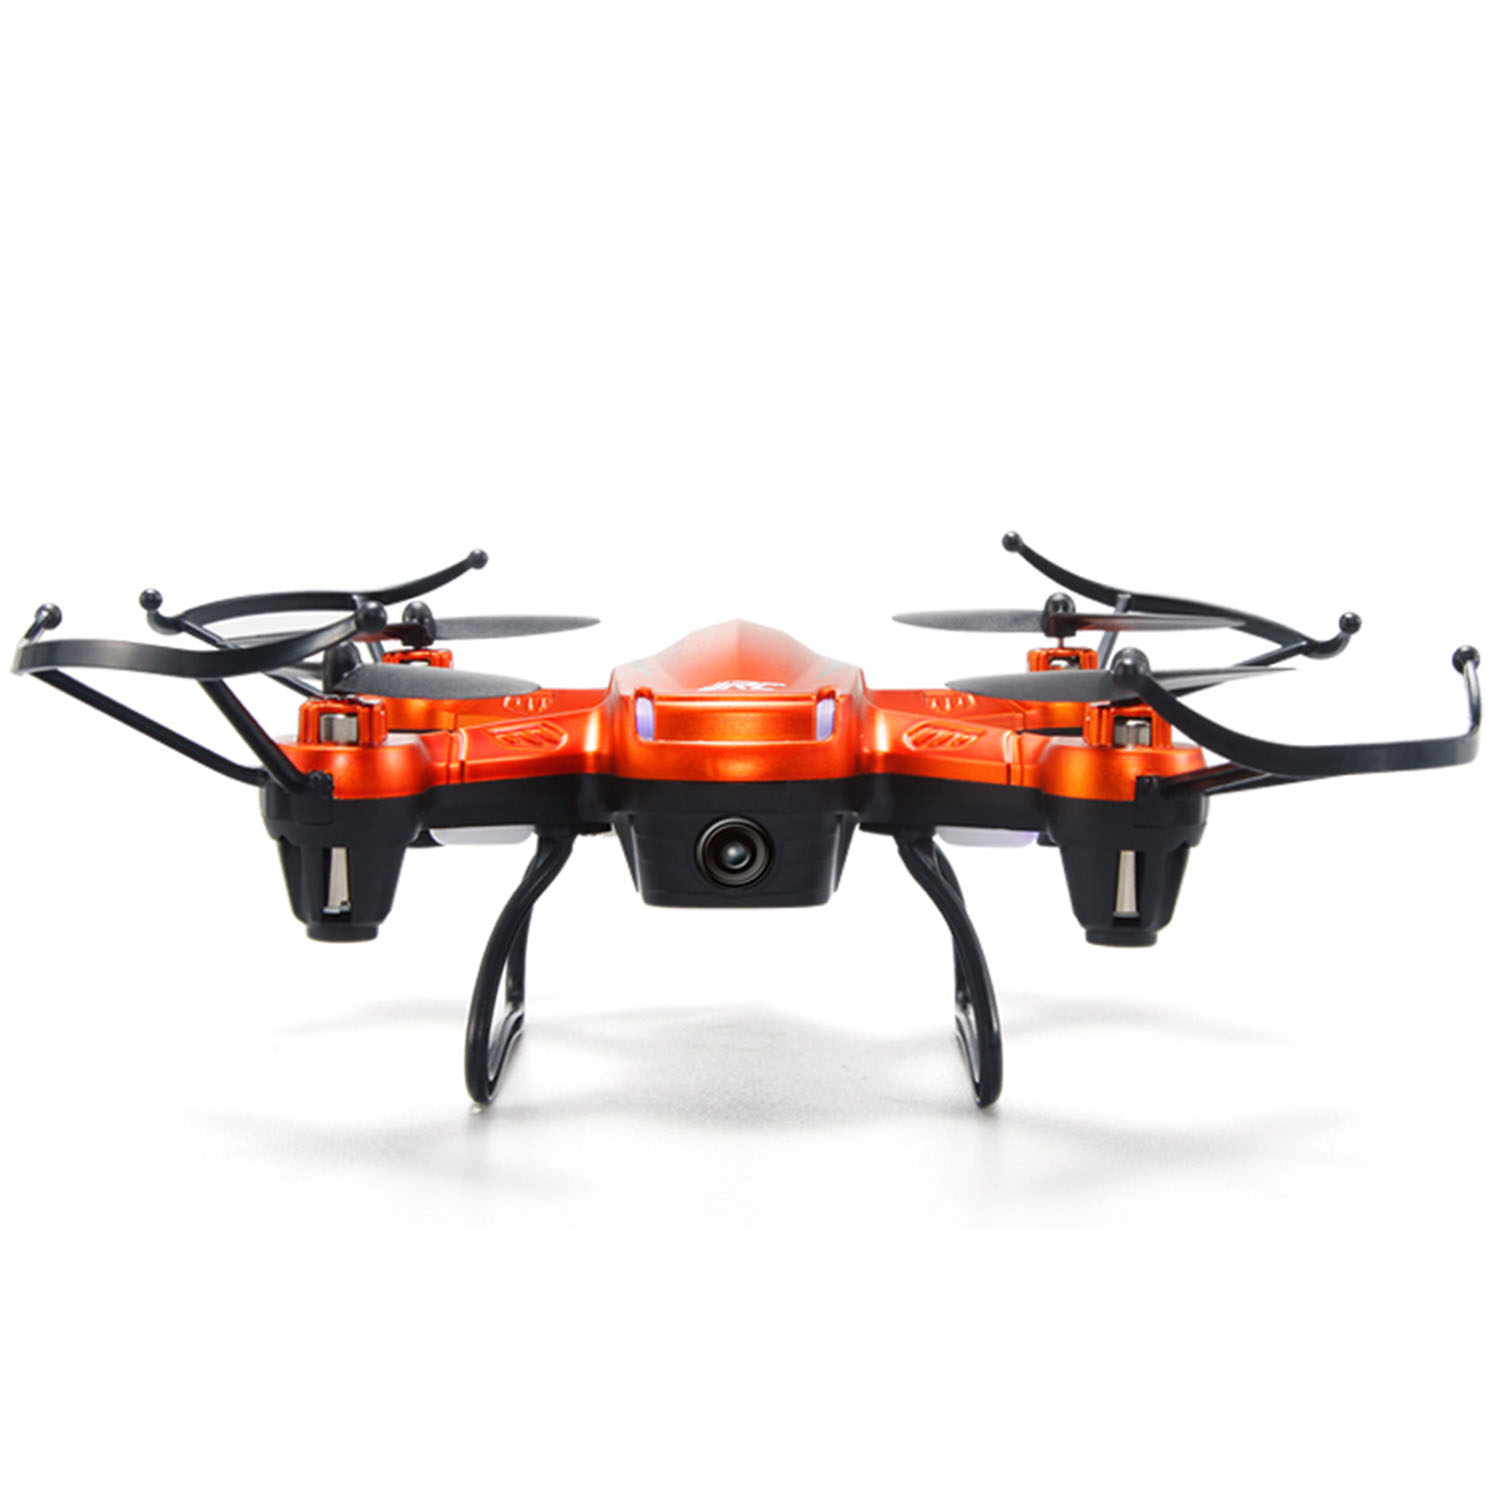 4 Channel 6-Axis 2.4GHz Wifi Real Time Transmission LED Light Altitude Hold 2.0MP RC Gyro Drone Quadcopter Helicopter Toy